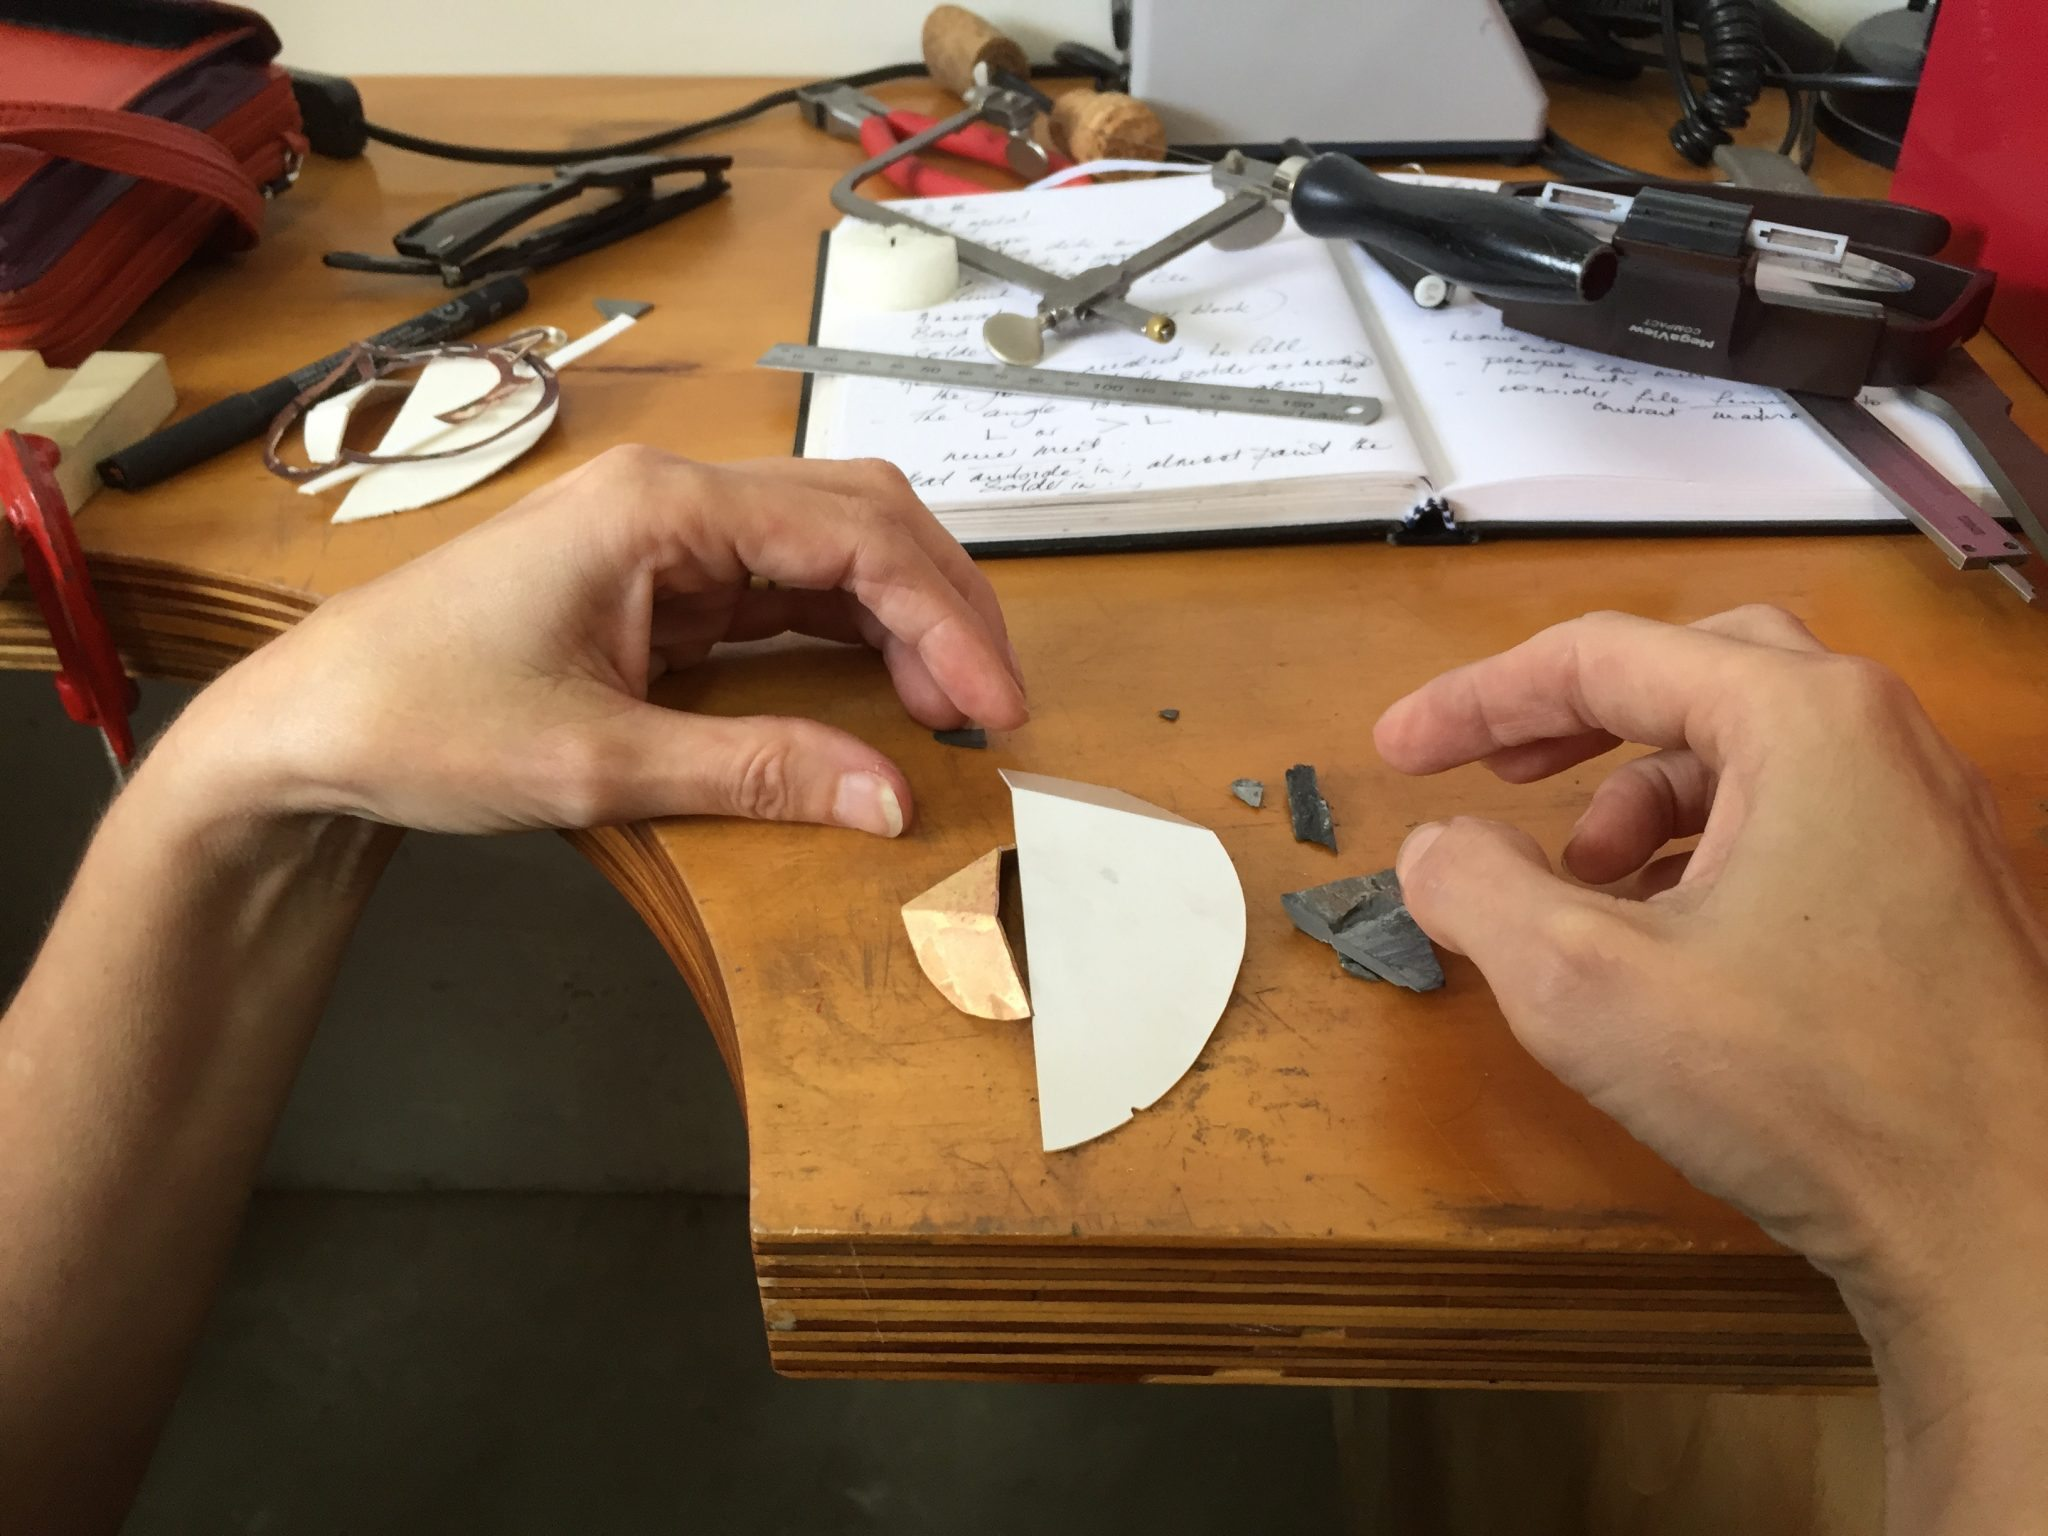 learning how to make jewellery in the Introductory jewellery making course